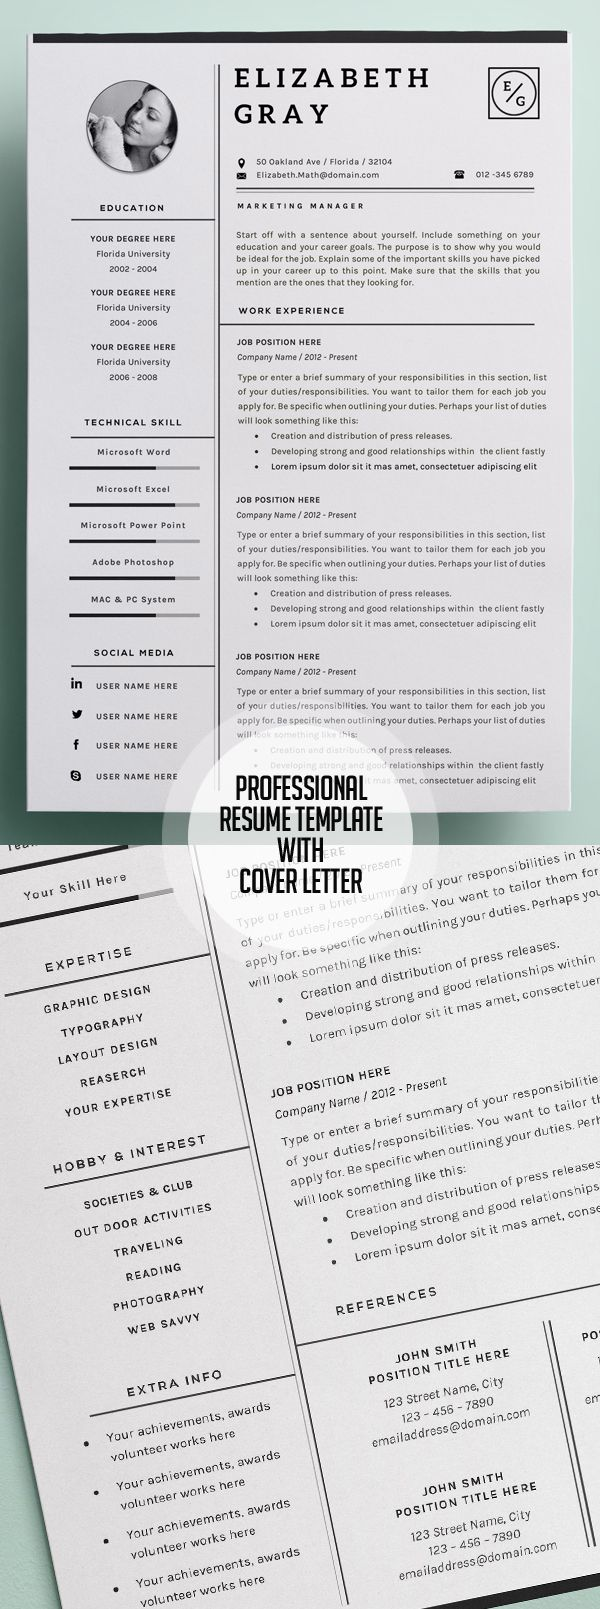 Opposenewapstandardsus  Mesmerizing  Resume Ideas On Pinterest  Resume Resume Templates And  With Glamorous Professional And Modern Resume Template With Page Cover Cvtemplate With Archaic Pastoral Resume Also How To List Skills On Resume In Addition Dba Resume And General Cover Letter For Resume As Well As Resume Templates For Word  Additionally Free Microsoft Resume Templates From Pinterestcom With Opposenewapstandardsus  Glamorous  Resume Ideas On Pinterest  Resume Resume Templates And  With Archaic Professional And Modern Resume Template With Page Cover Cvtemplate And Mesmerizing Pastoral Resume Also How To List Skills On Resume In Addition Dba Resume From Pinterestcom